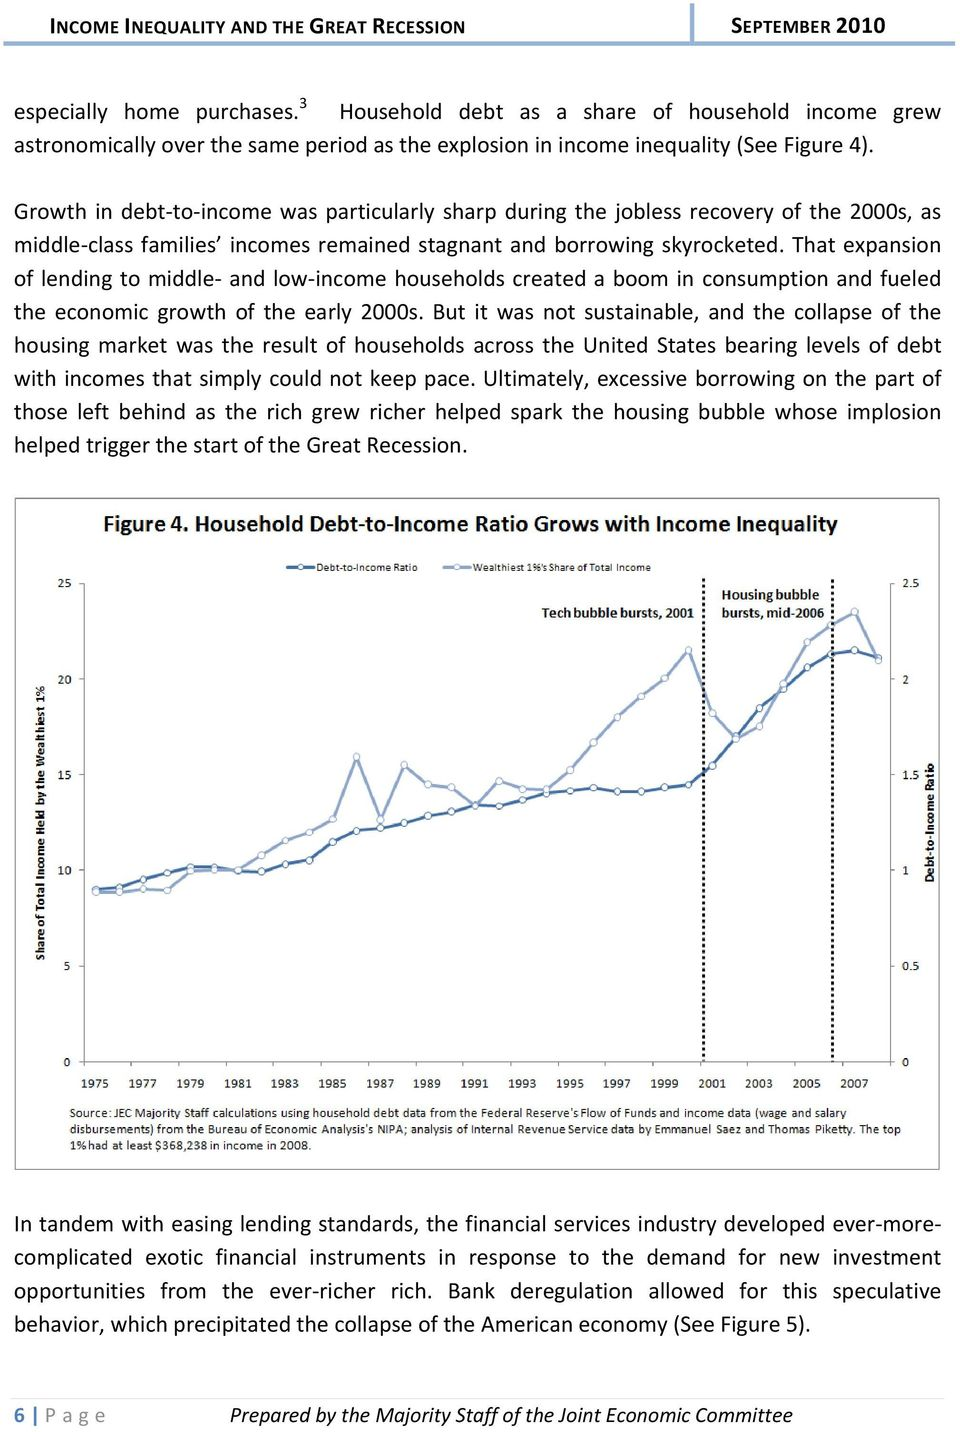 That expansion of lending to middle and low income households created a boom in consumption and fueled the economic growth of the early 2000s.